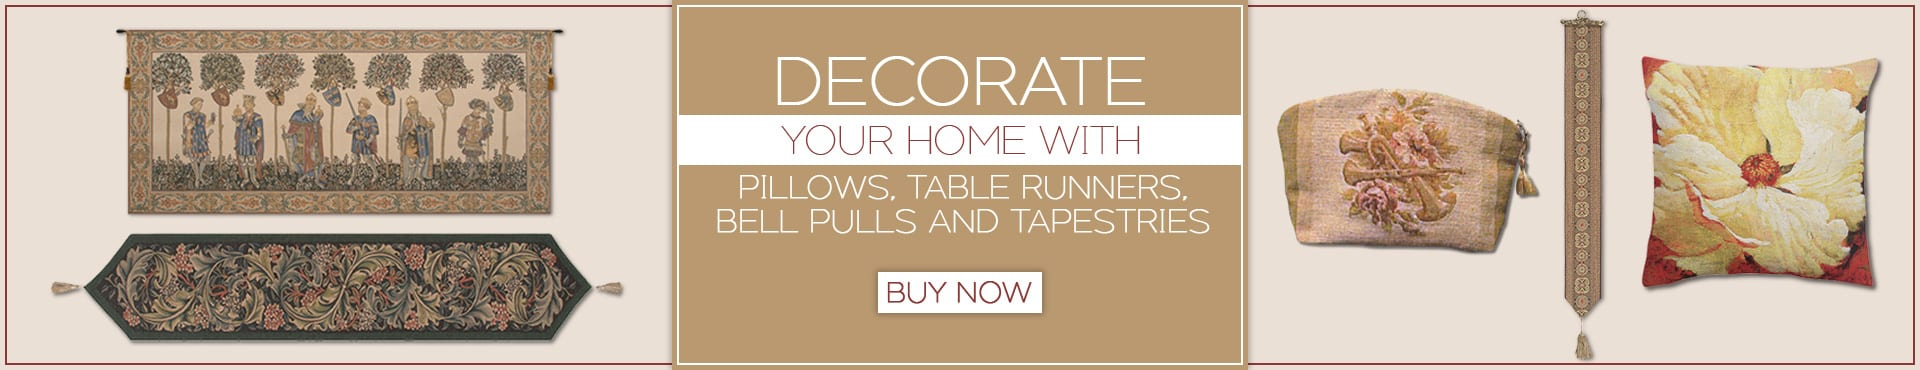 Decorate your home with Pillows, Table Runners, Bell Pulls and Tapestries